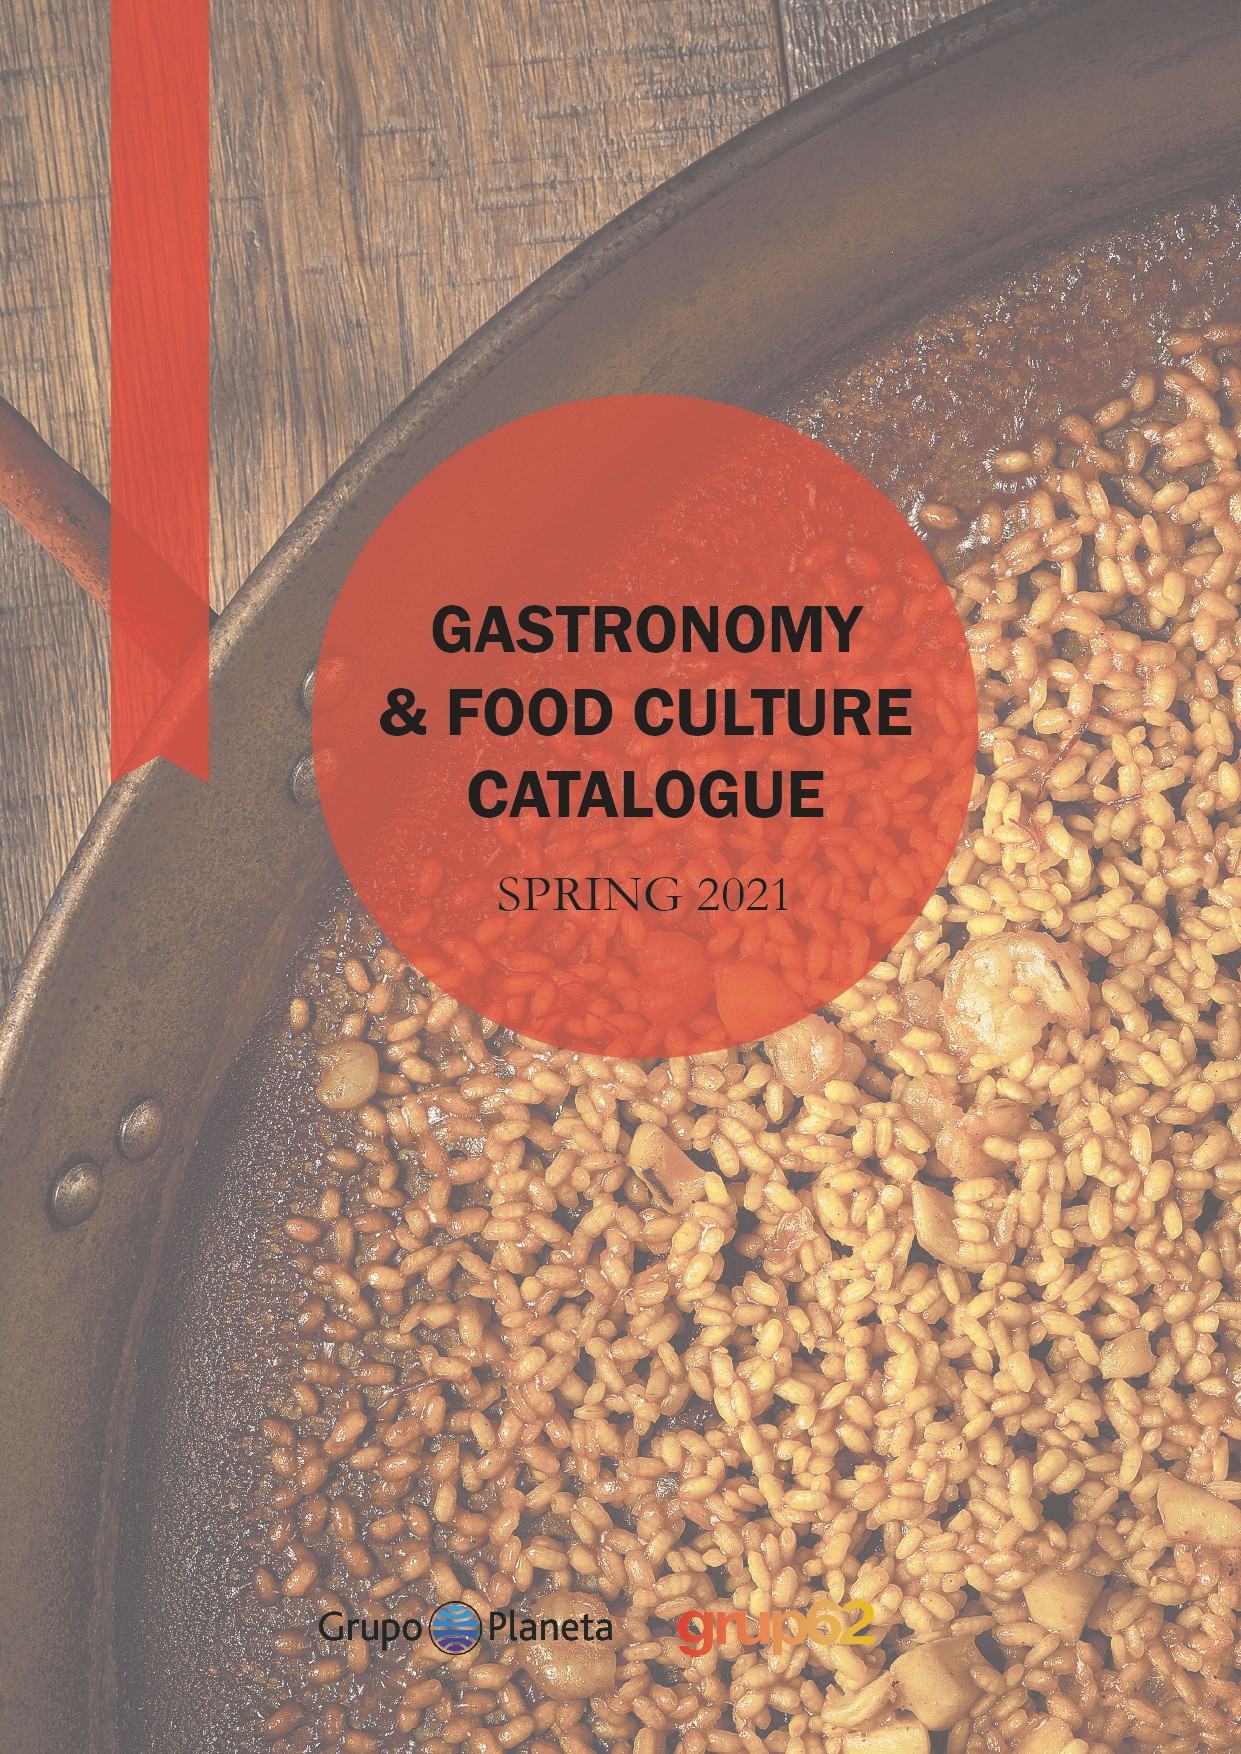 Spring 2021 Gastronomy & Food Culture